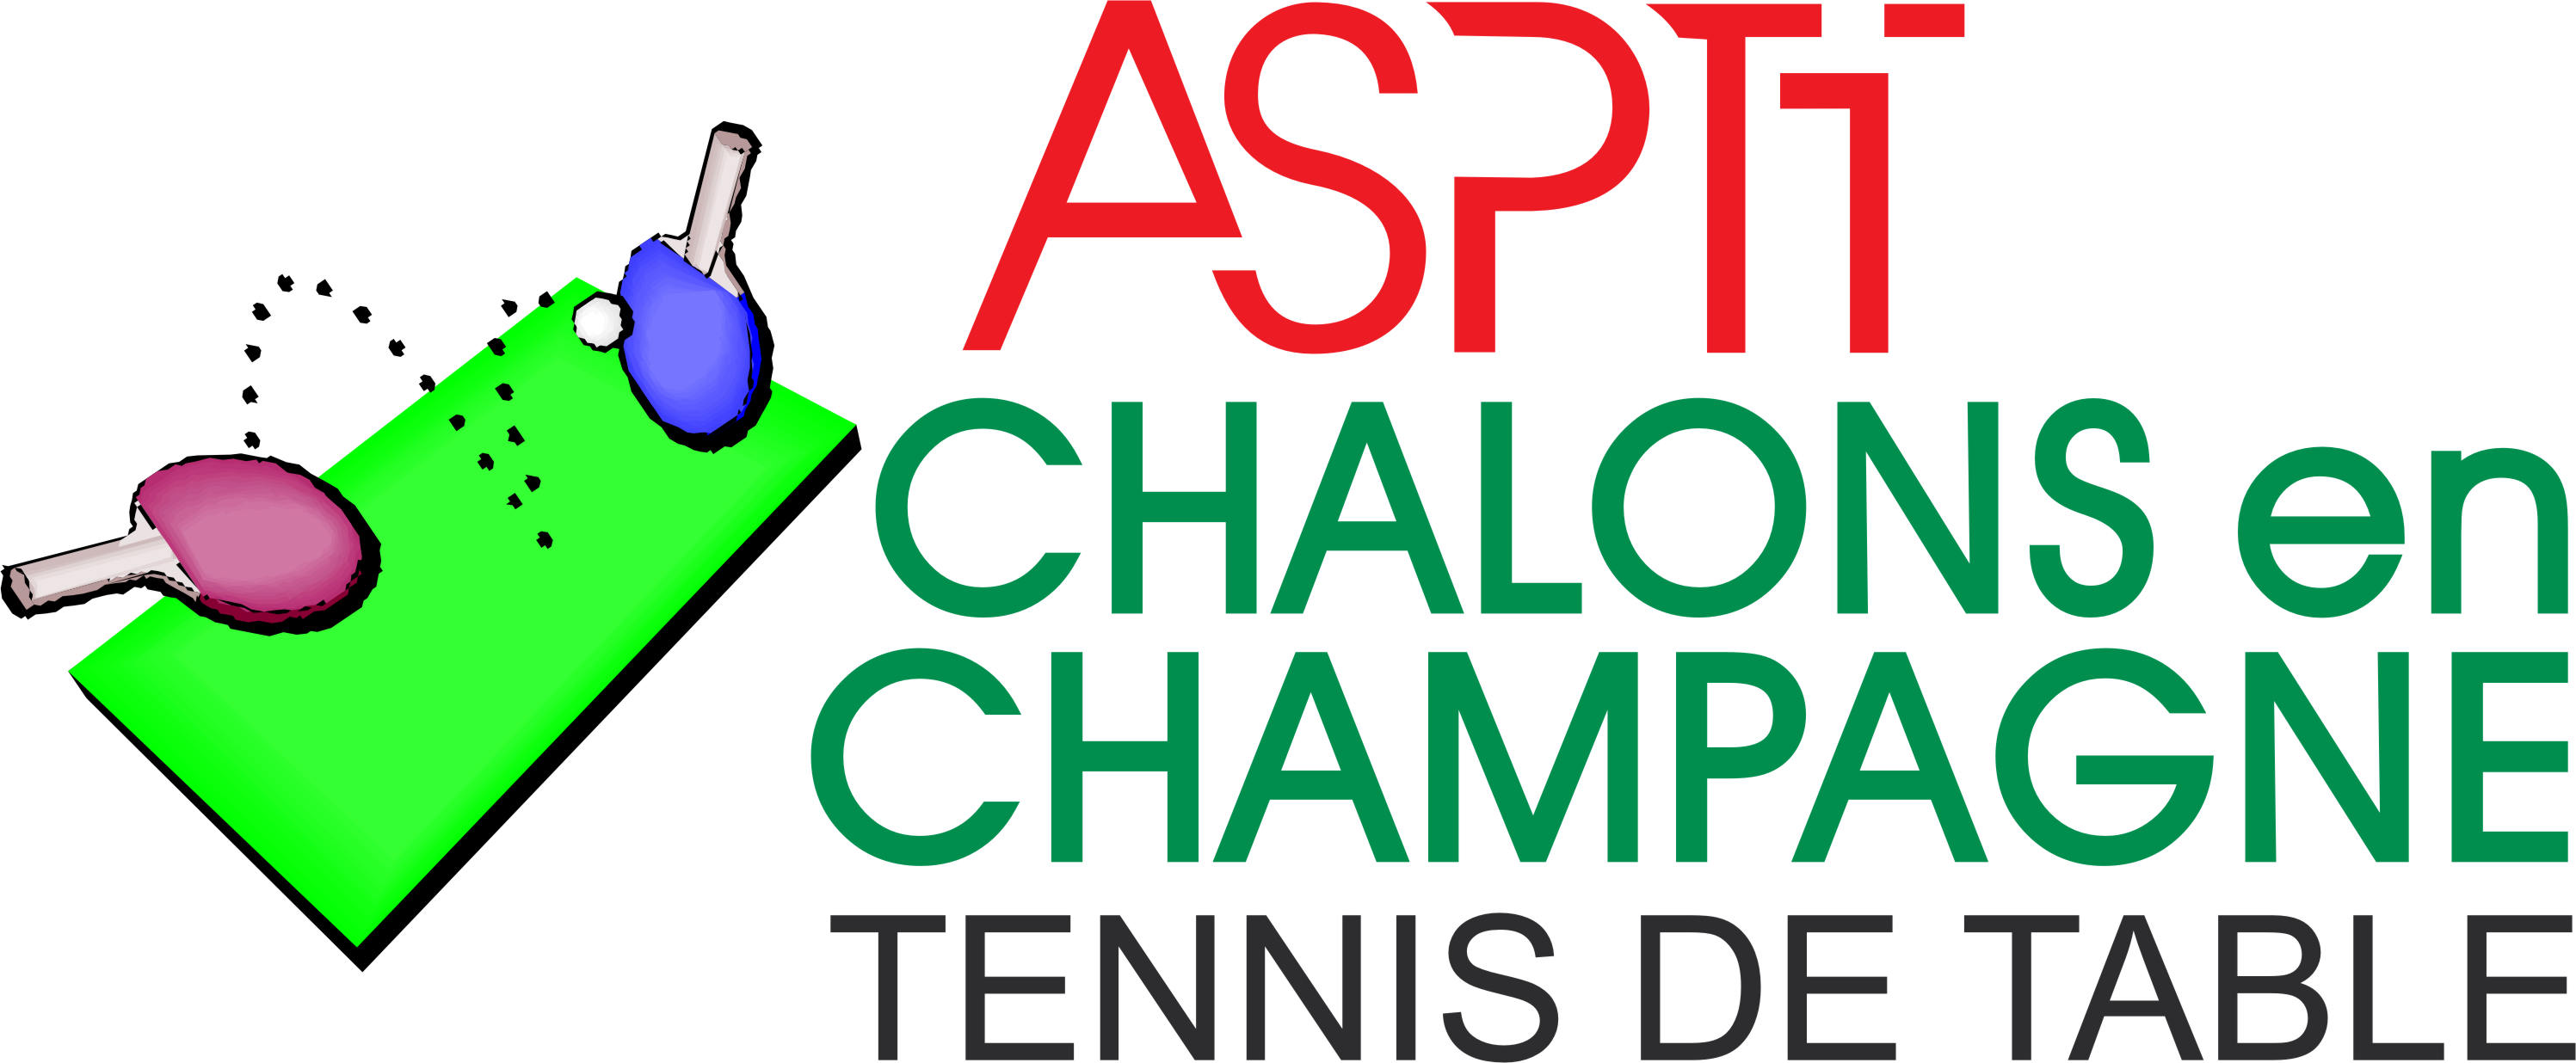 ASPTT TENNIS DE TABLE